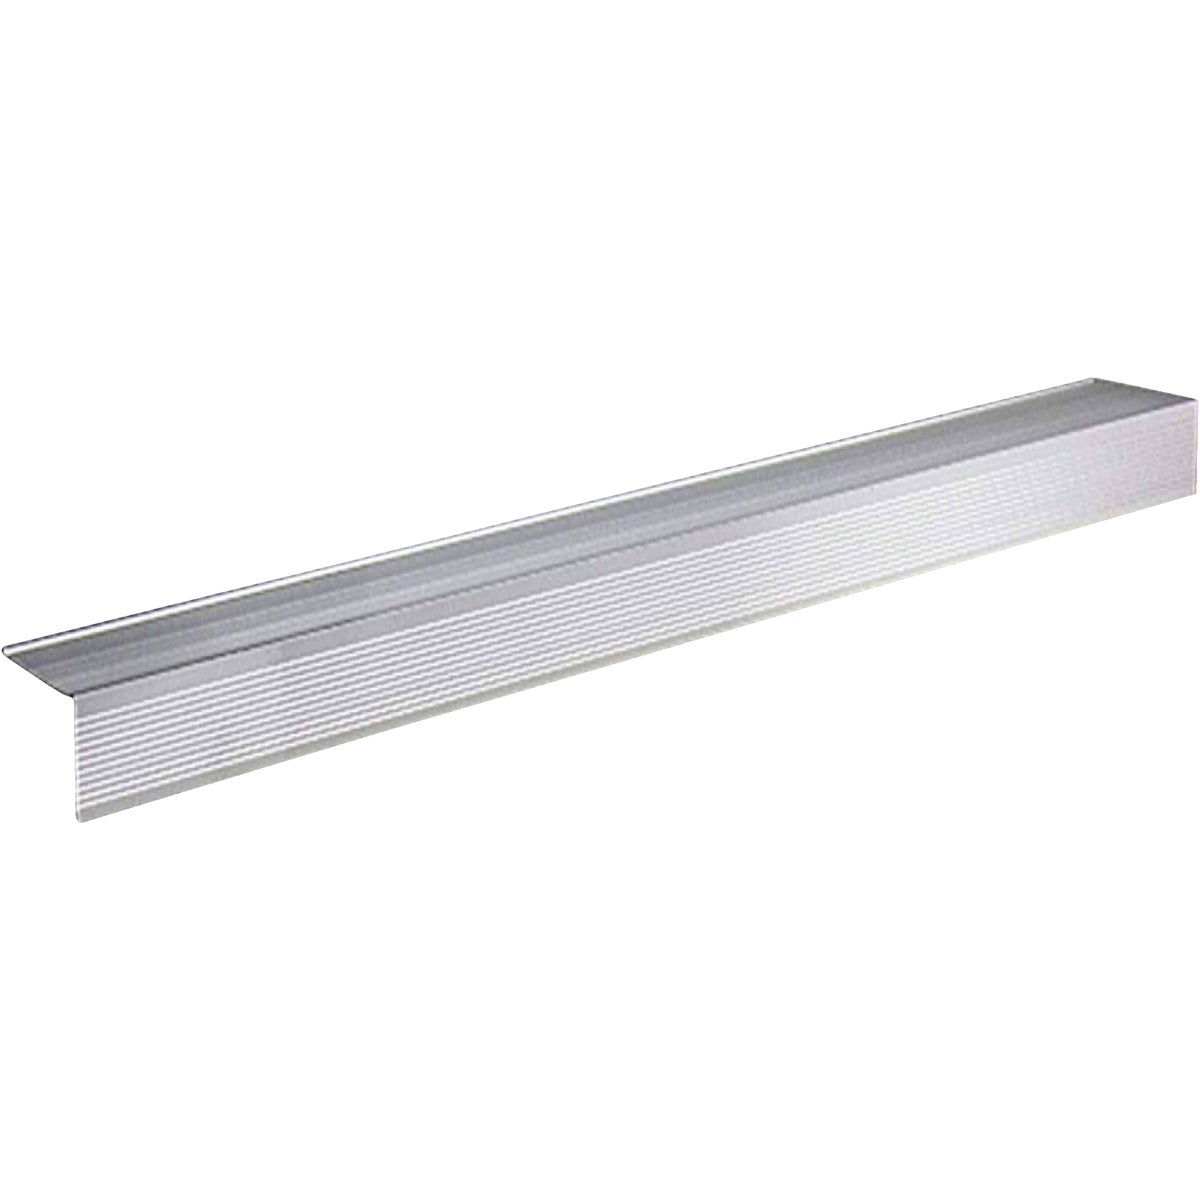 2-3/4X6 MILL SILL NOSING - 81877 by M D Building Prod